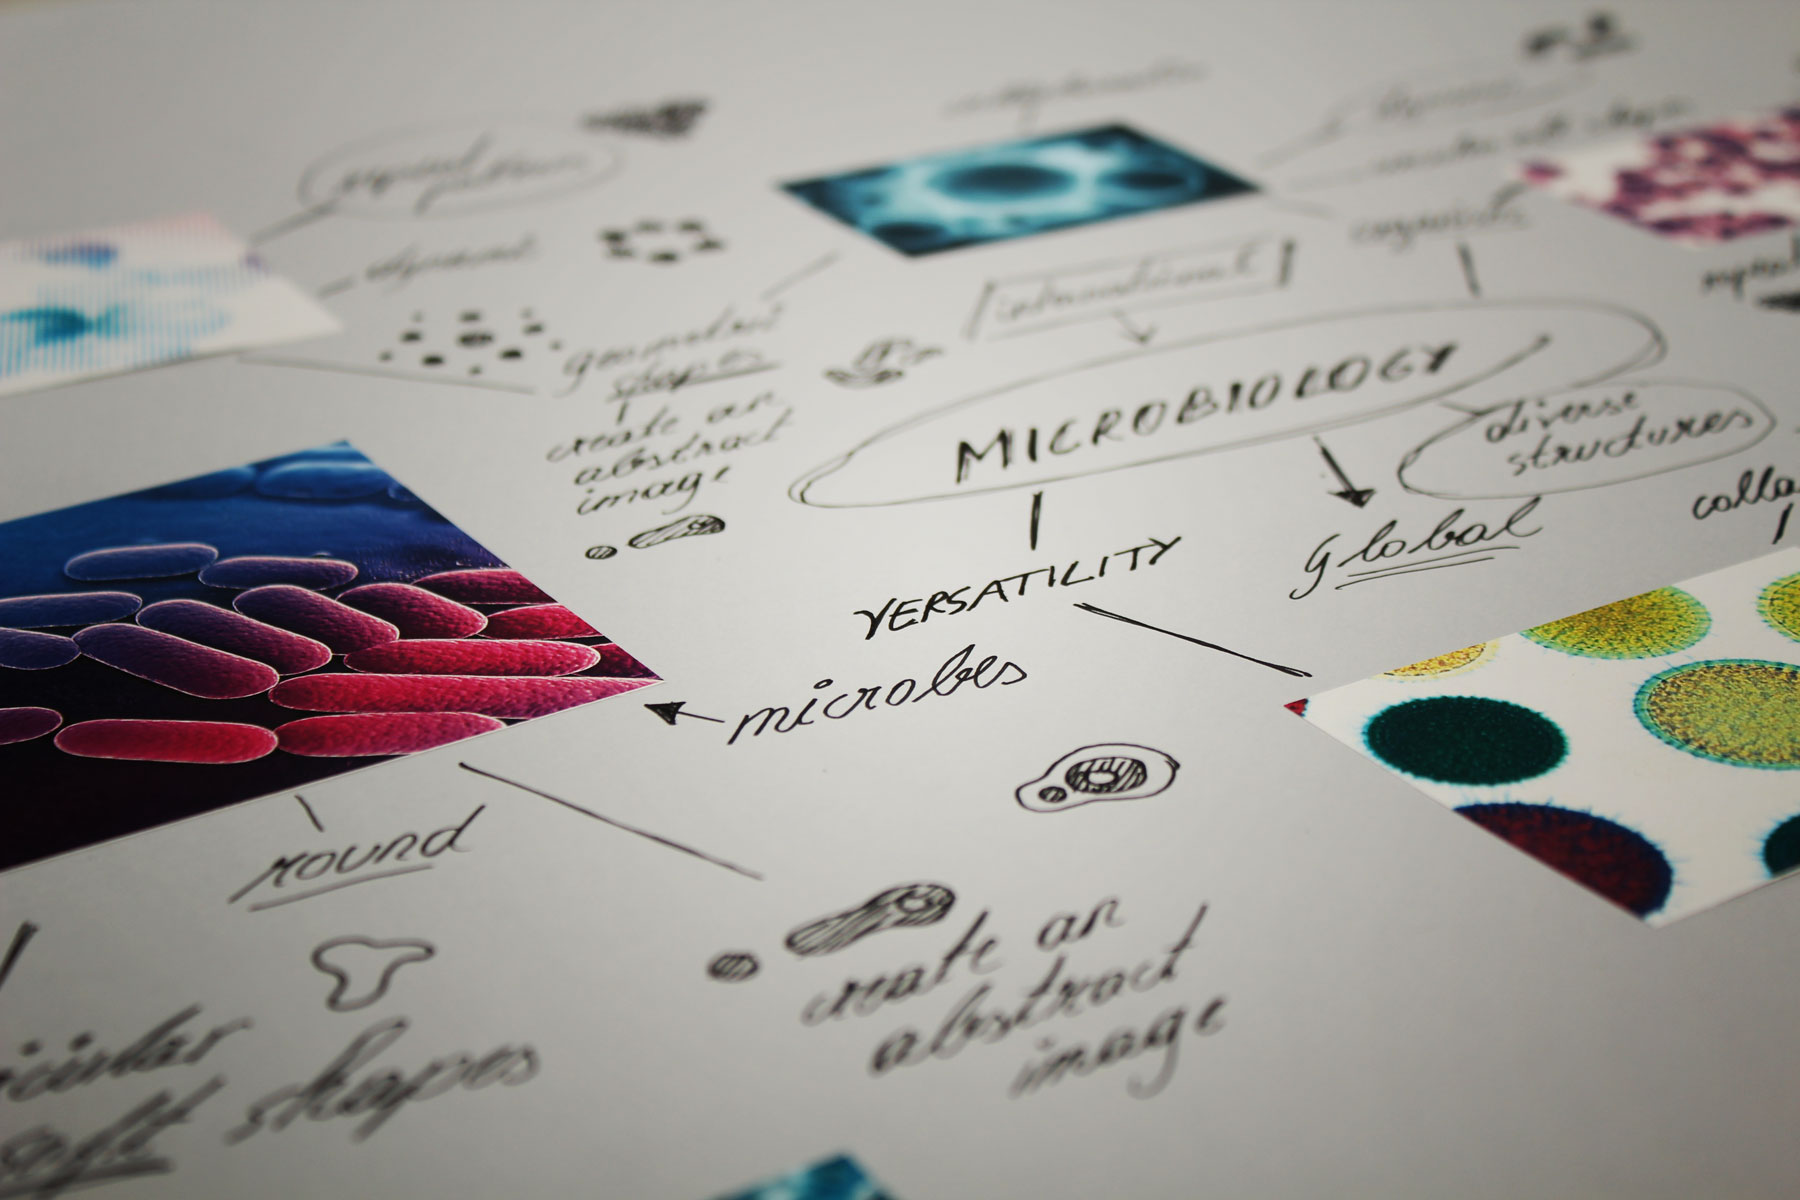 Going back to the essence of Microbiology in order to deliver a fresh and coherent brand identity.